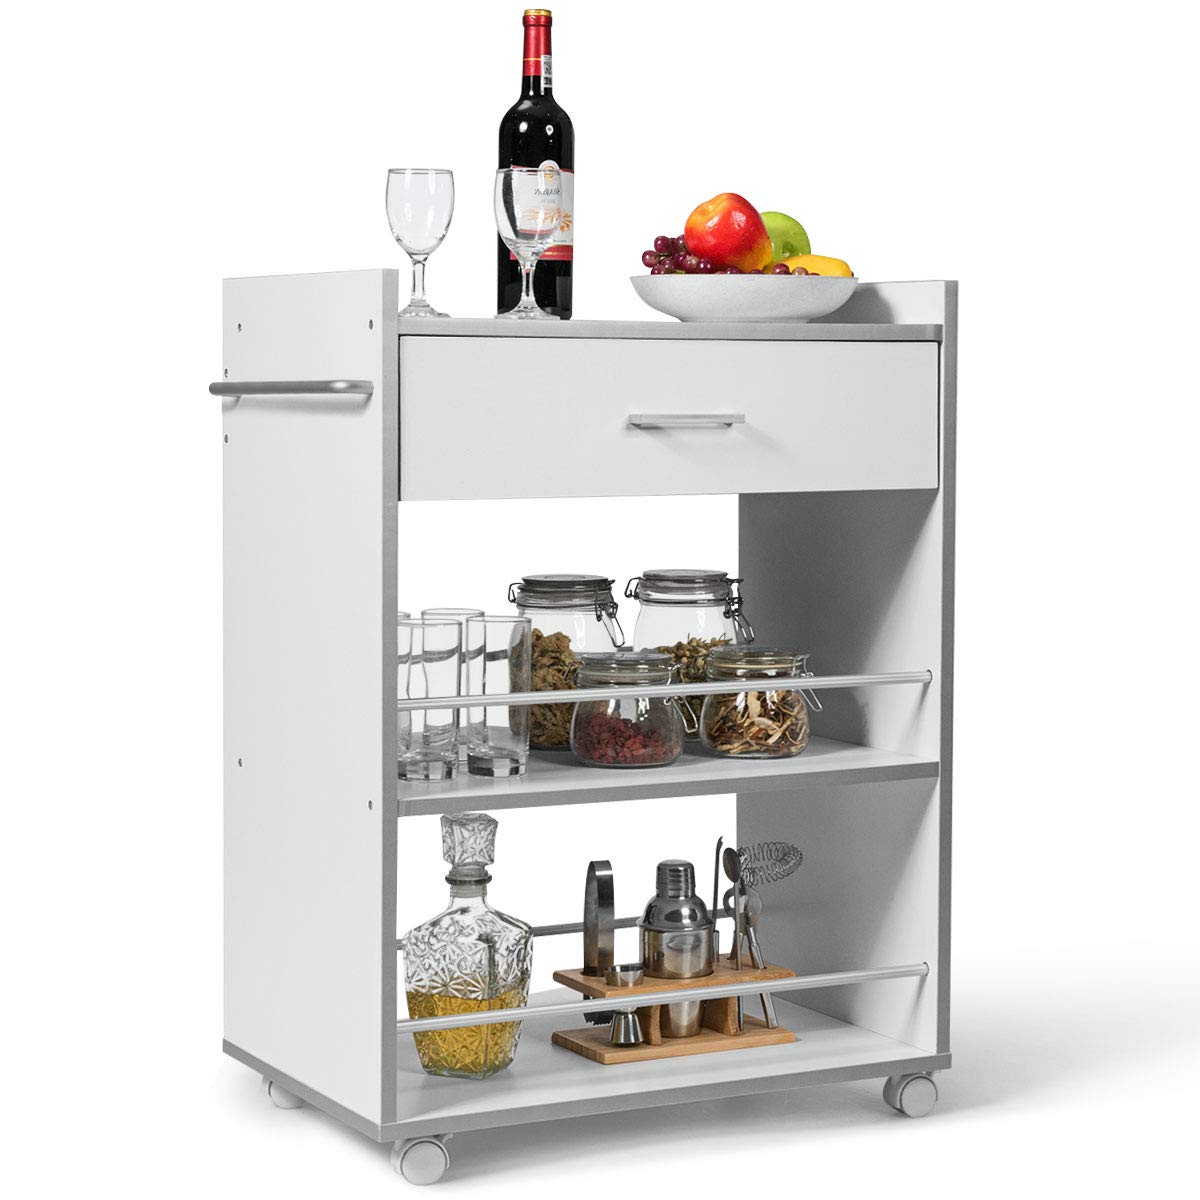 Giantex Kitchen Island Cart Dining Cart Rolling Trolley with Drawer, Towel Rack, Lockable Castors, 2 Shelves with Guardrail (White)